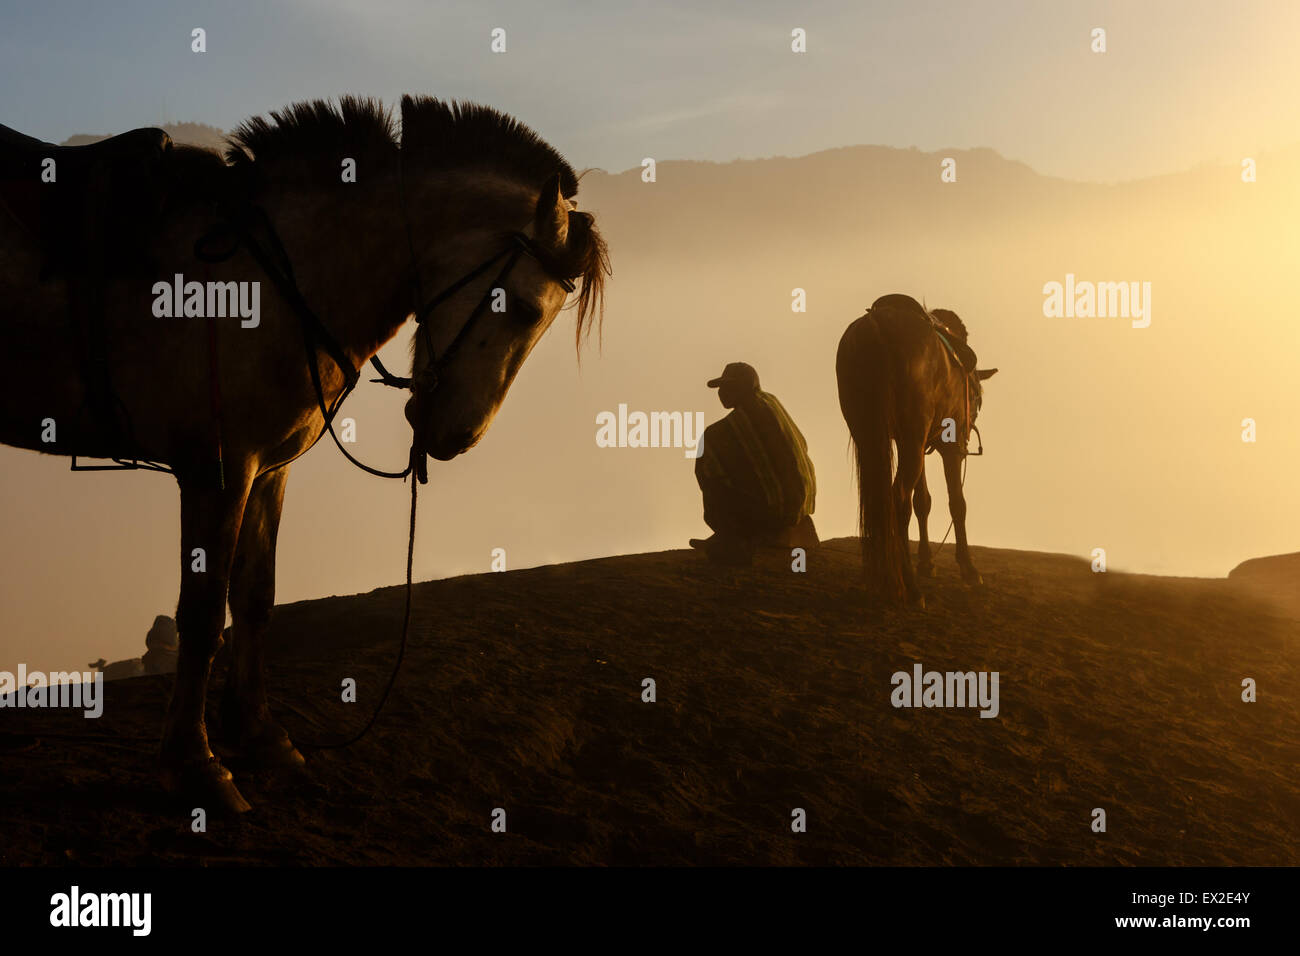 Silhouettes of men and the horses on the top of the hill with misty atmosphere - Stock Image